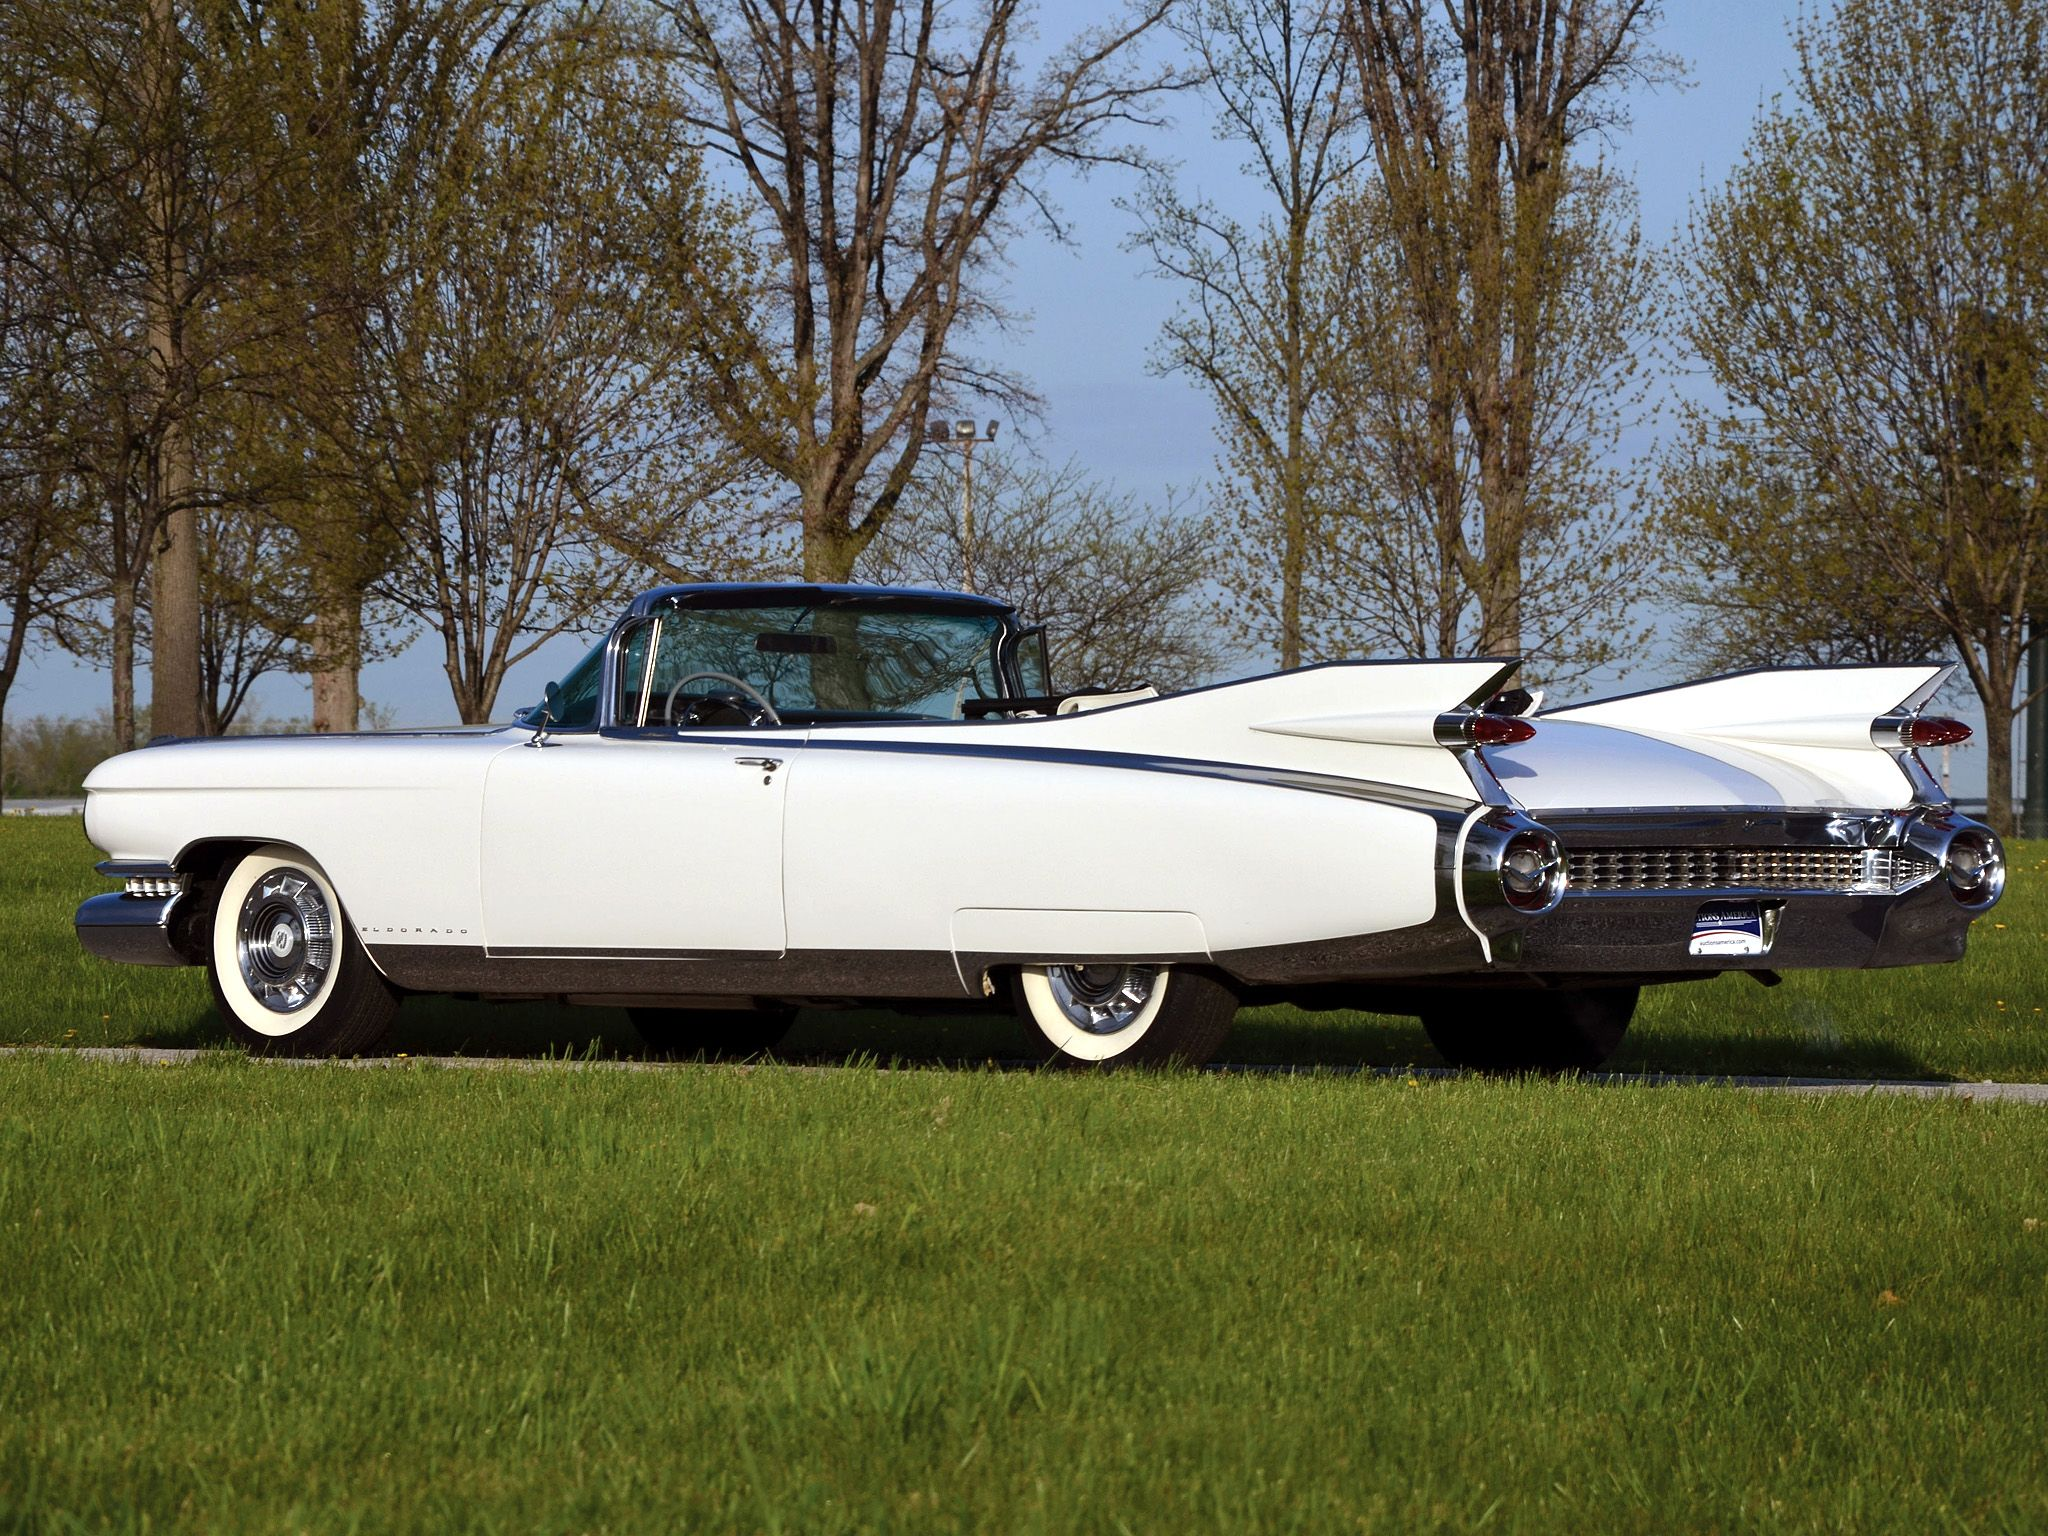 1959 Cadillac Eldorado Biarritz What to drive on a Sunday